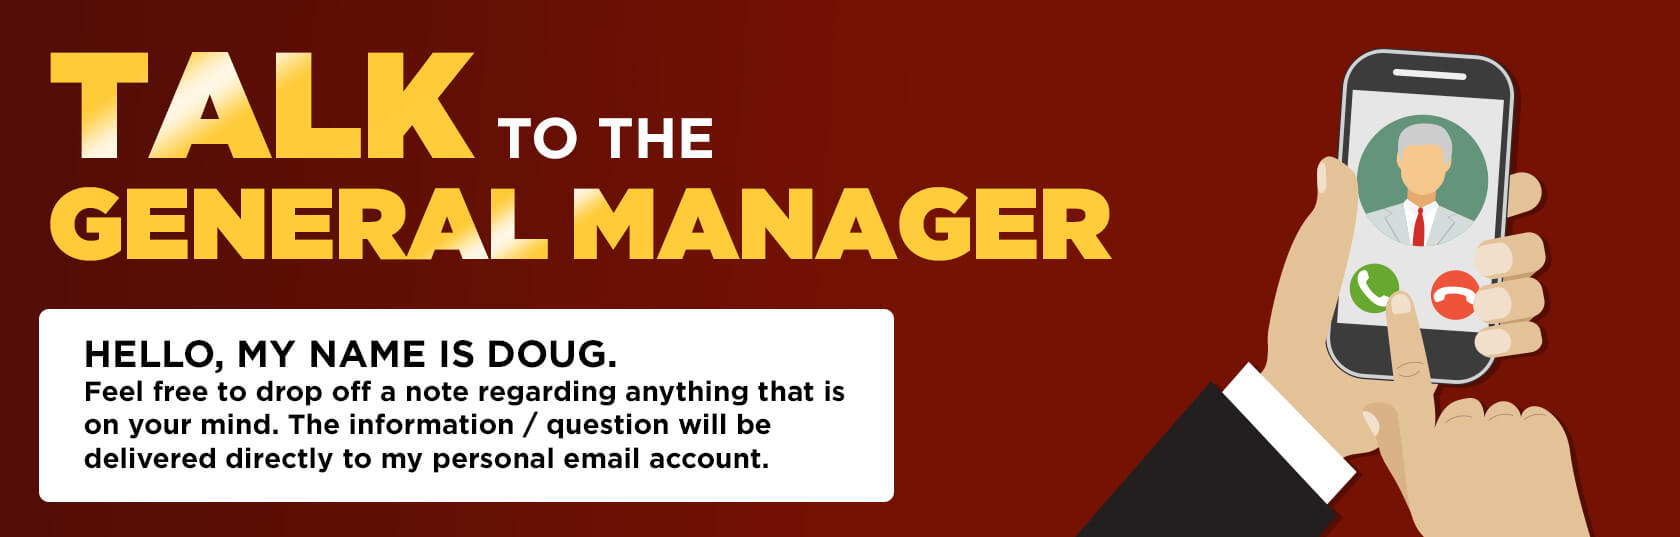 Talk to the General Manager -  Hello, My Name is Doug - Feel free to Leave Me a Note Here! All messages Come Straight to My Personal Email